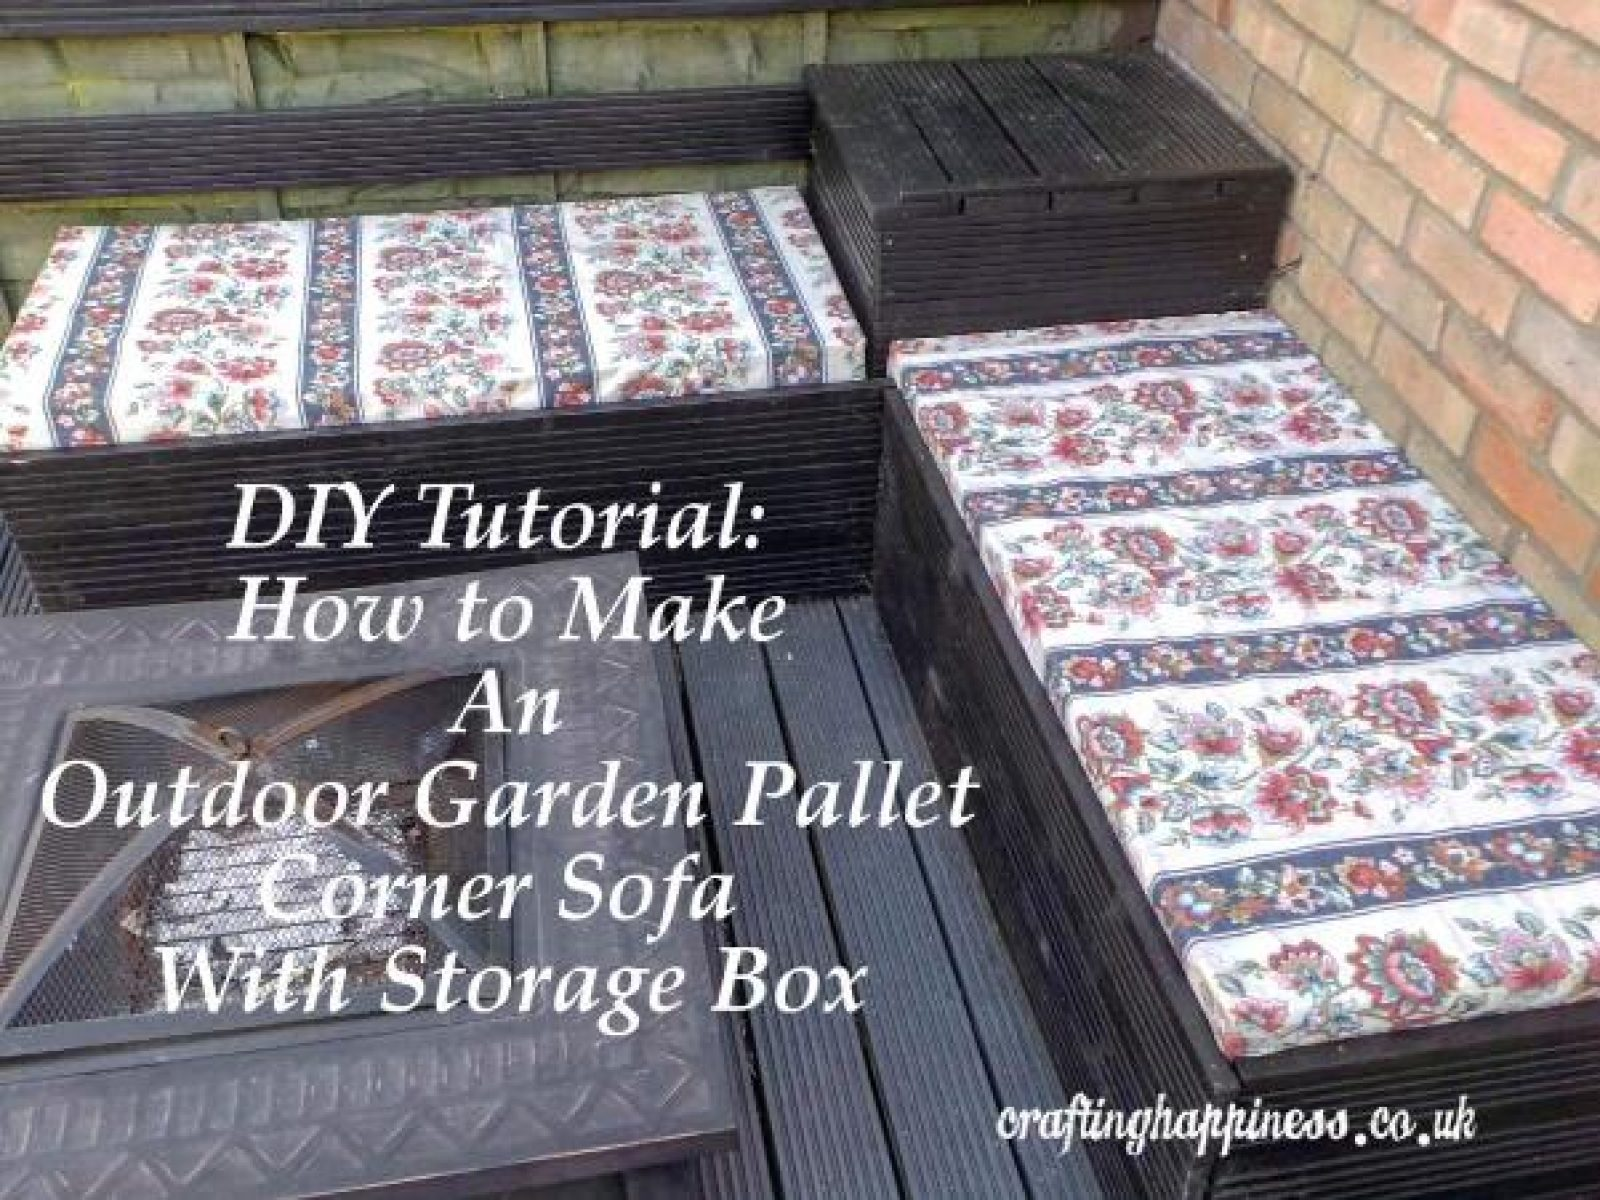 DIY Tutorial: How to Make an Outdoor Garden Pallet Corner Sofa with Storage Box